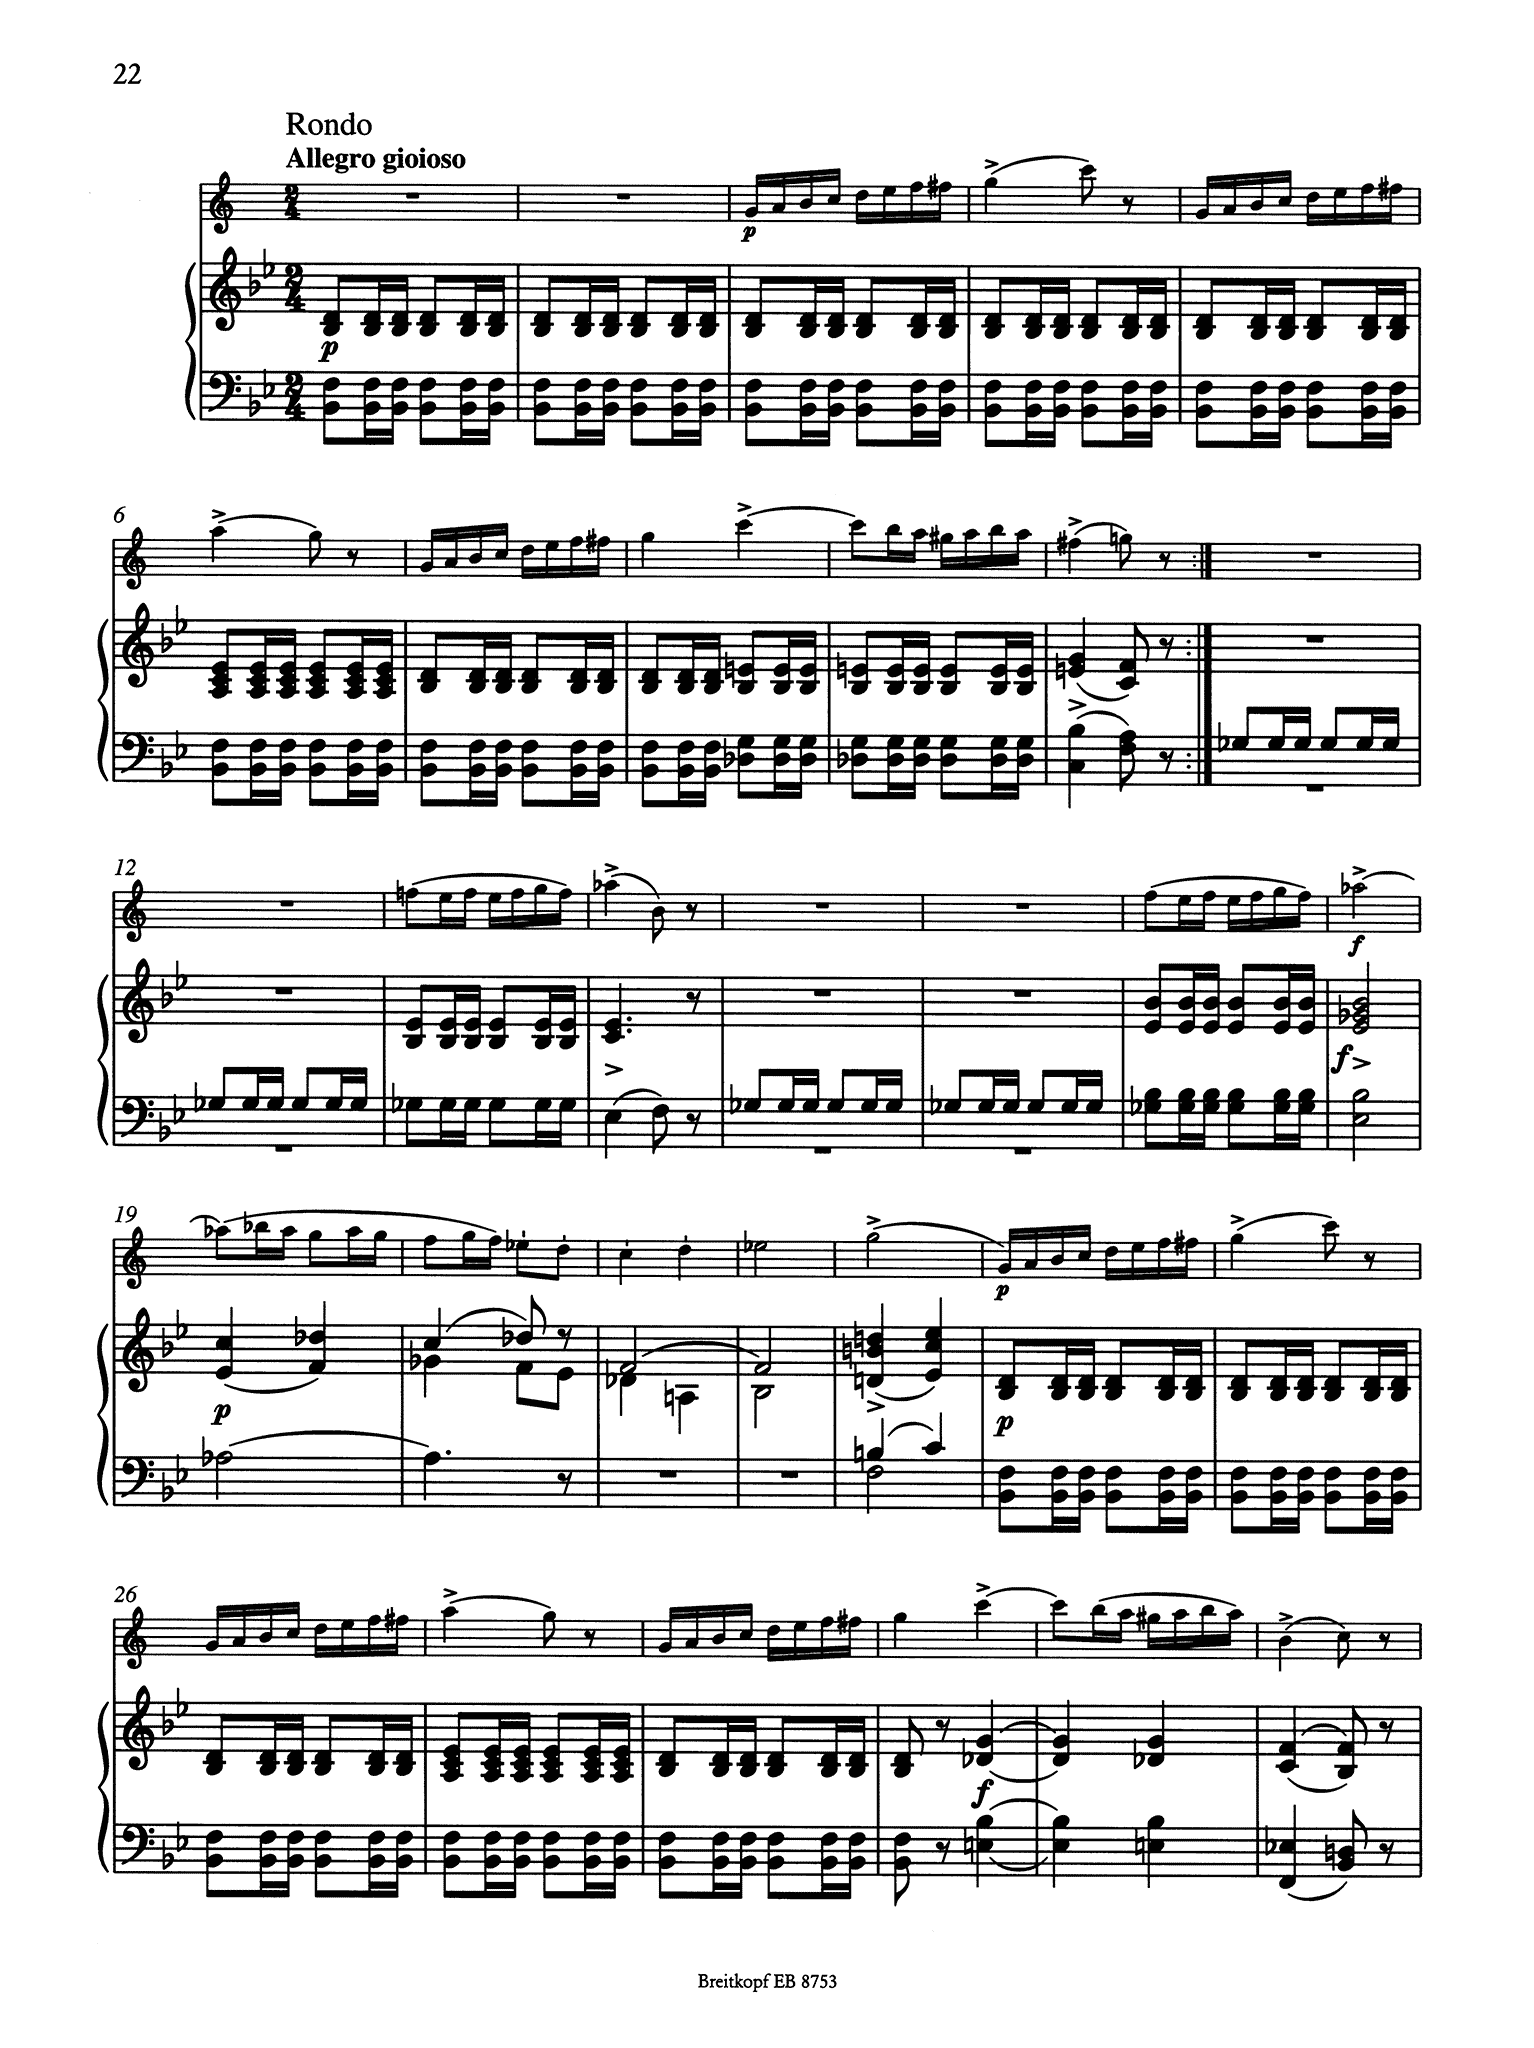 Clarinet Quintet, Op. 34 Piano reduction - Movement 4